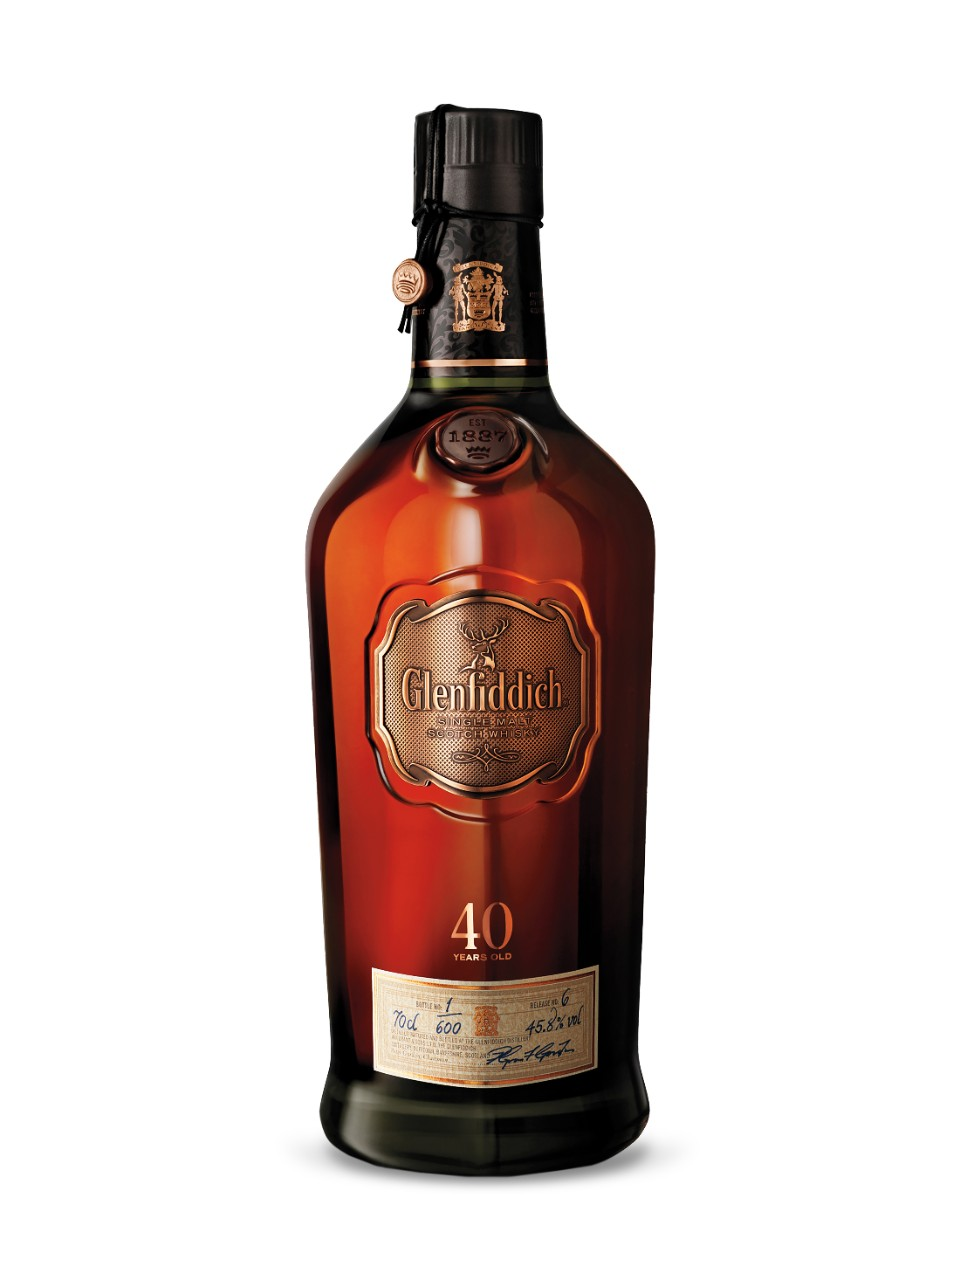 Glenfiddich 40-Year-Old Rare Collection Single Malt